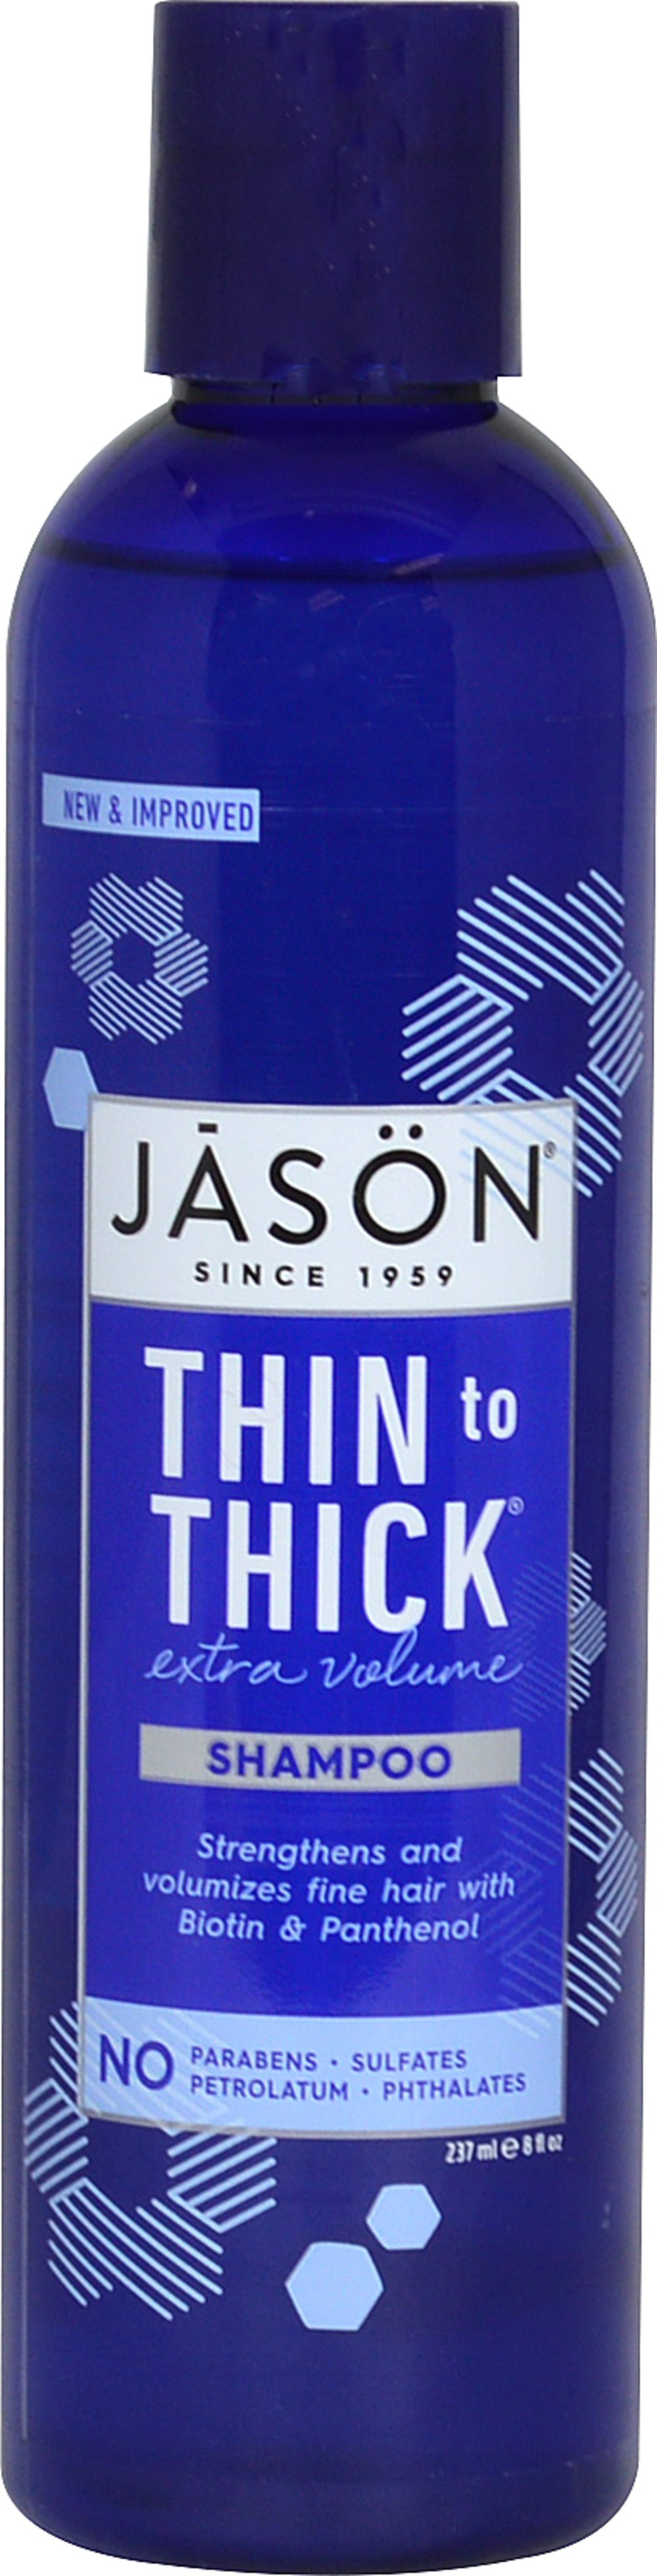 Jason® Thin To Thick® Extra Volume Shampoo <p><strong>From the Manufacturer's Label: </strong></p><p>Jason® Thin to Thick® Extra Volume Shampoo features mild botanical surfactants that gently yet thoroughly cleanse hair and purify the scalp. This body building shampoo coats the hair with Biotin, Panthenol and plant proteins to add extra volume, shine and bounce to fine, limp hair.</p><p>Manufactured by  Jason® Natural Product